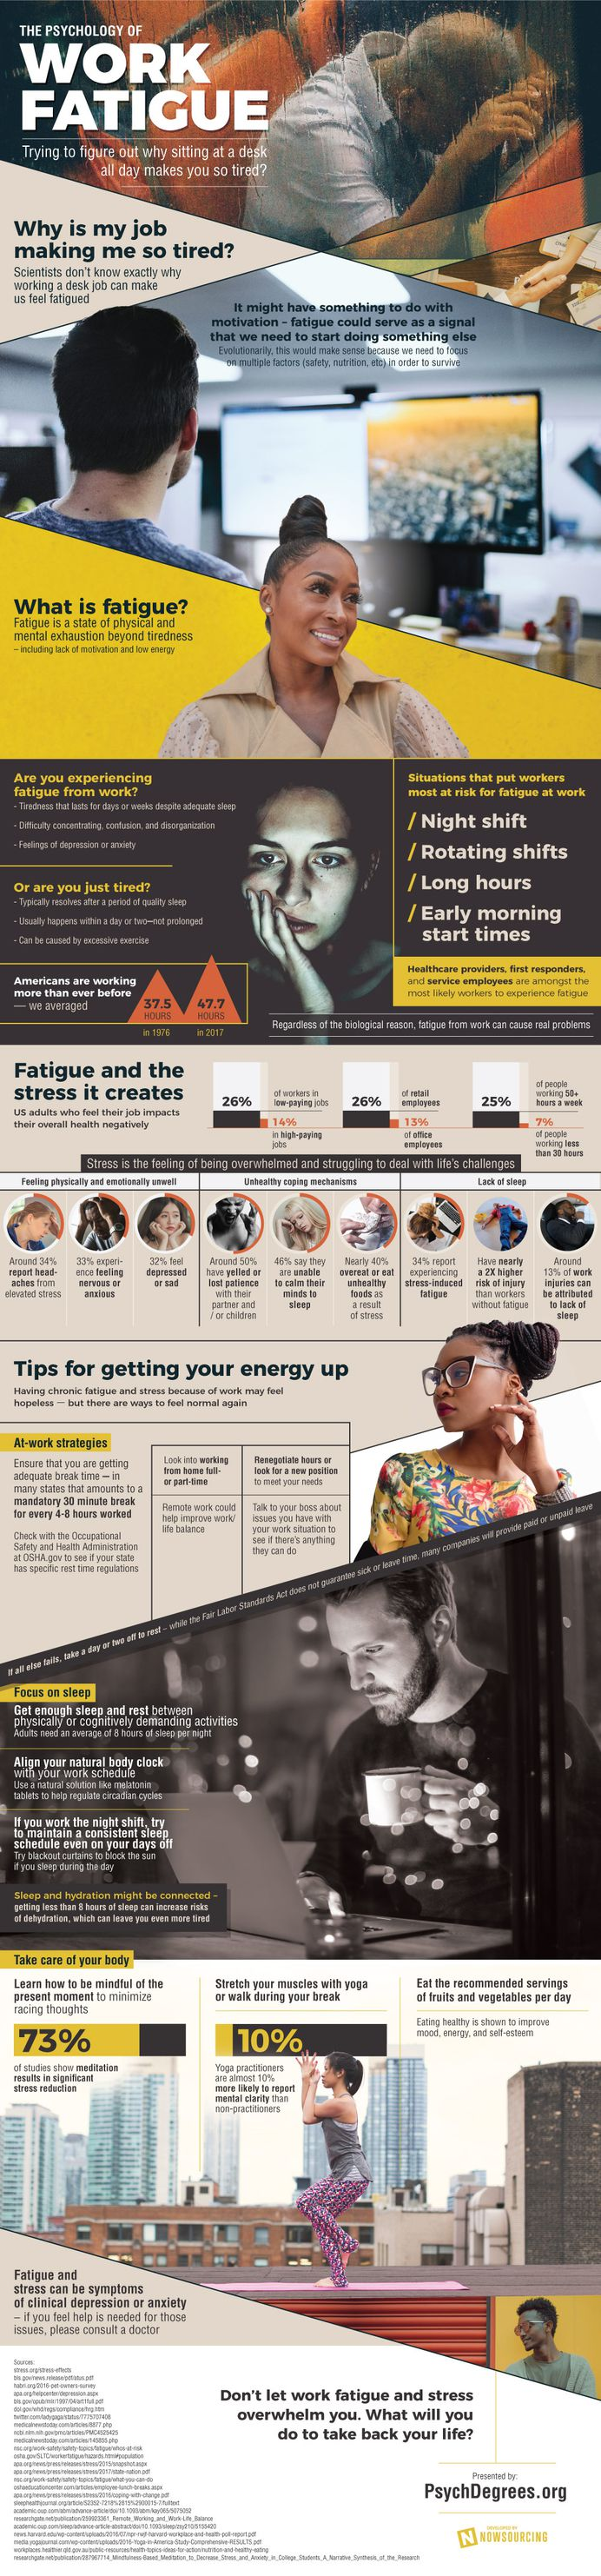 The Psychology of Work Fatigue - what makes you so tired after a long day of work when all you are really doing is sitting in a chair?